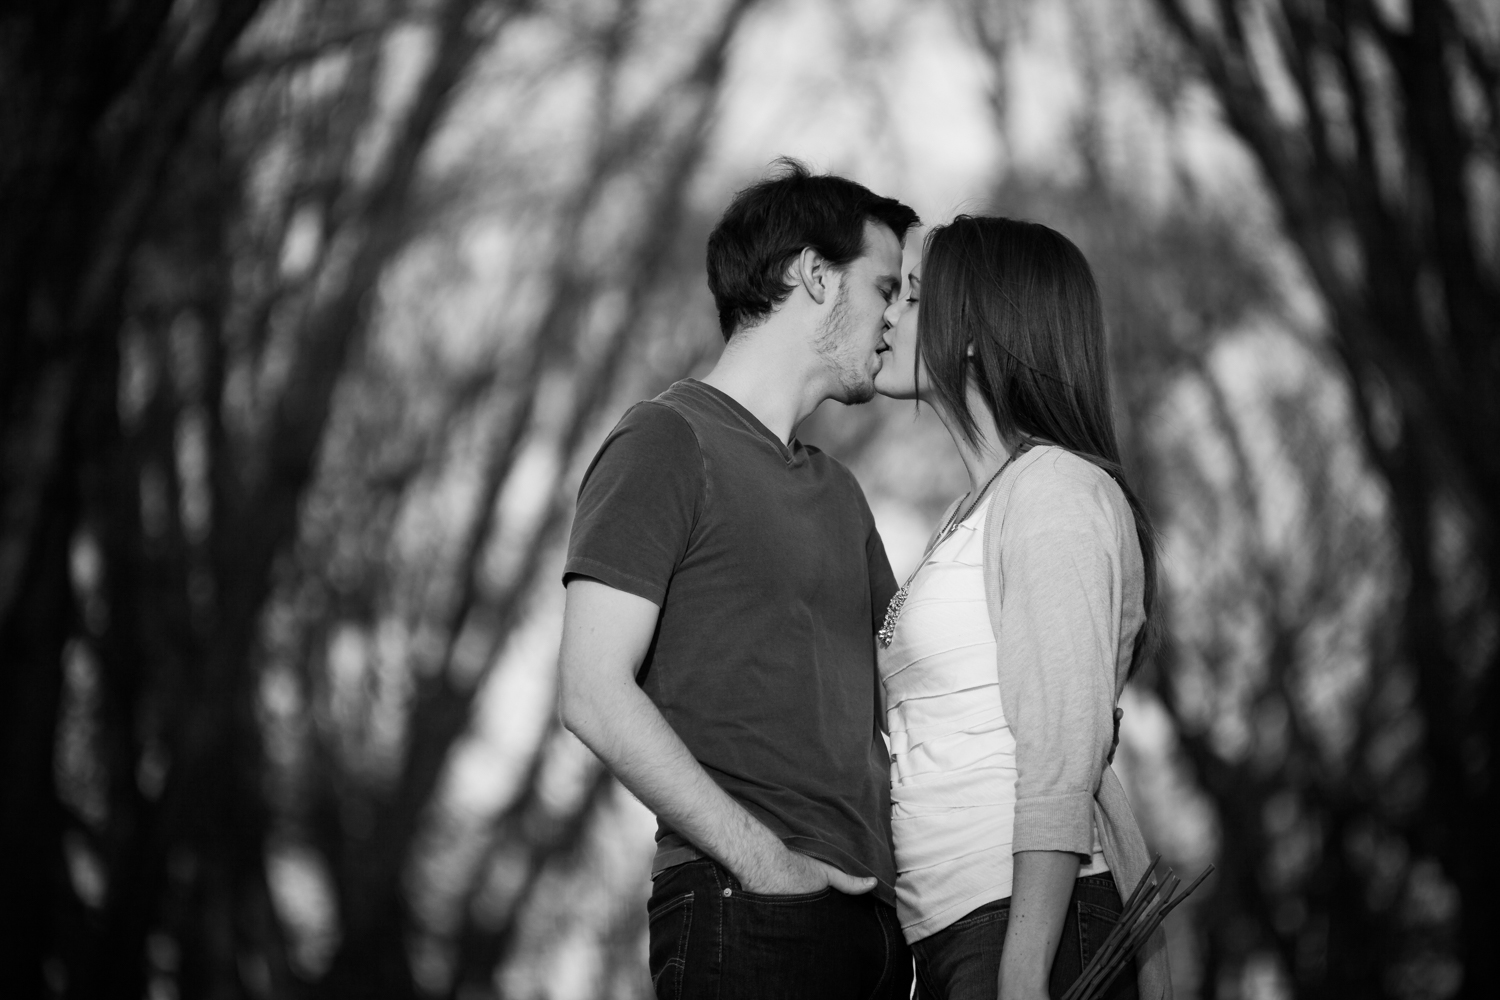 chicago+engagment+photography-11.jpg